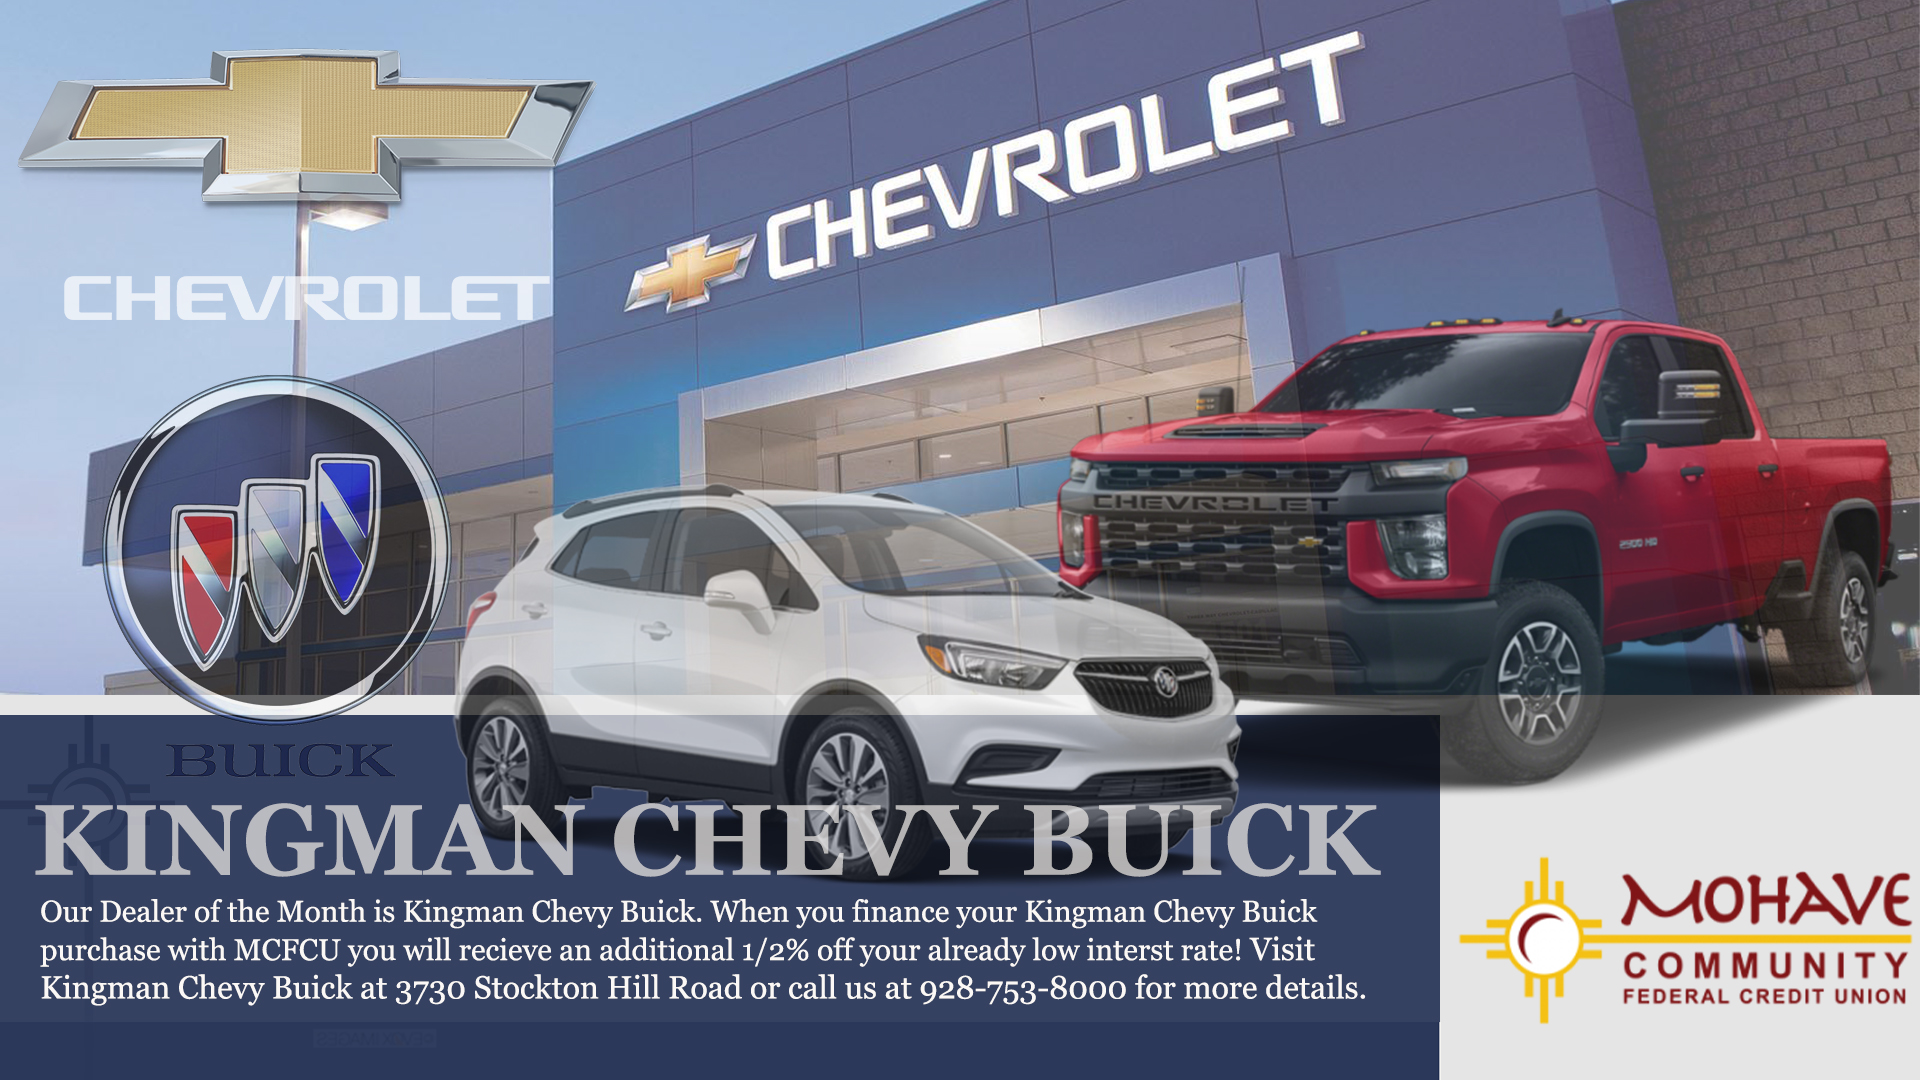 Kingman Chevy Buick is our dealer of the month.  When you finance your Kingman Chevy purchase with MCFCU, you will receive an additionl 1/2% off your already approved low interest rate. all loans are subject to credit approval.  Some restrictions may apply.  Please call us at 928-753-8000 for more details.